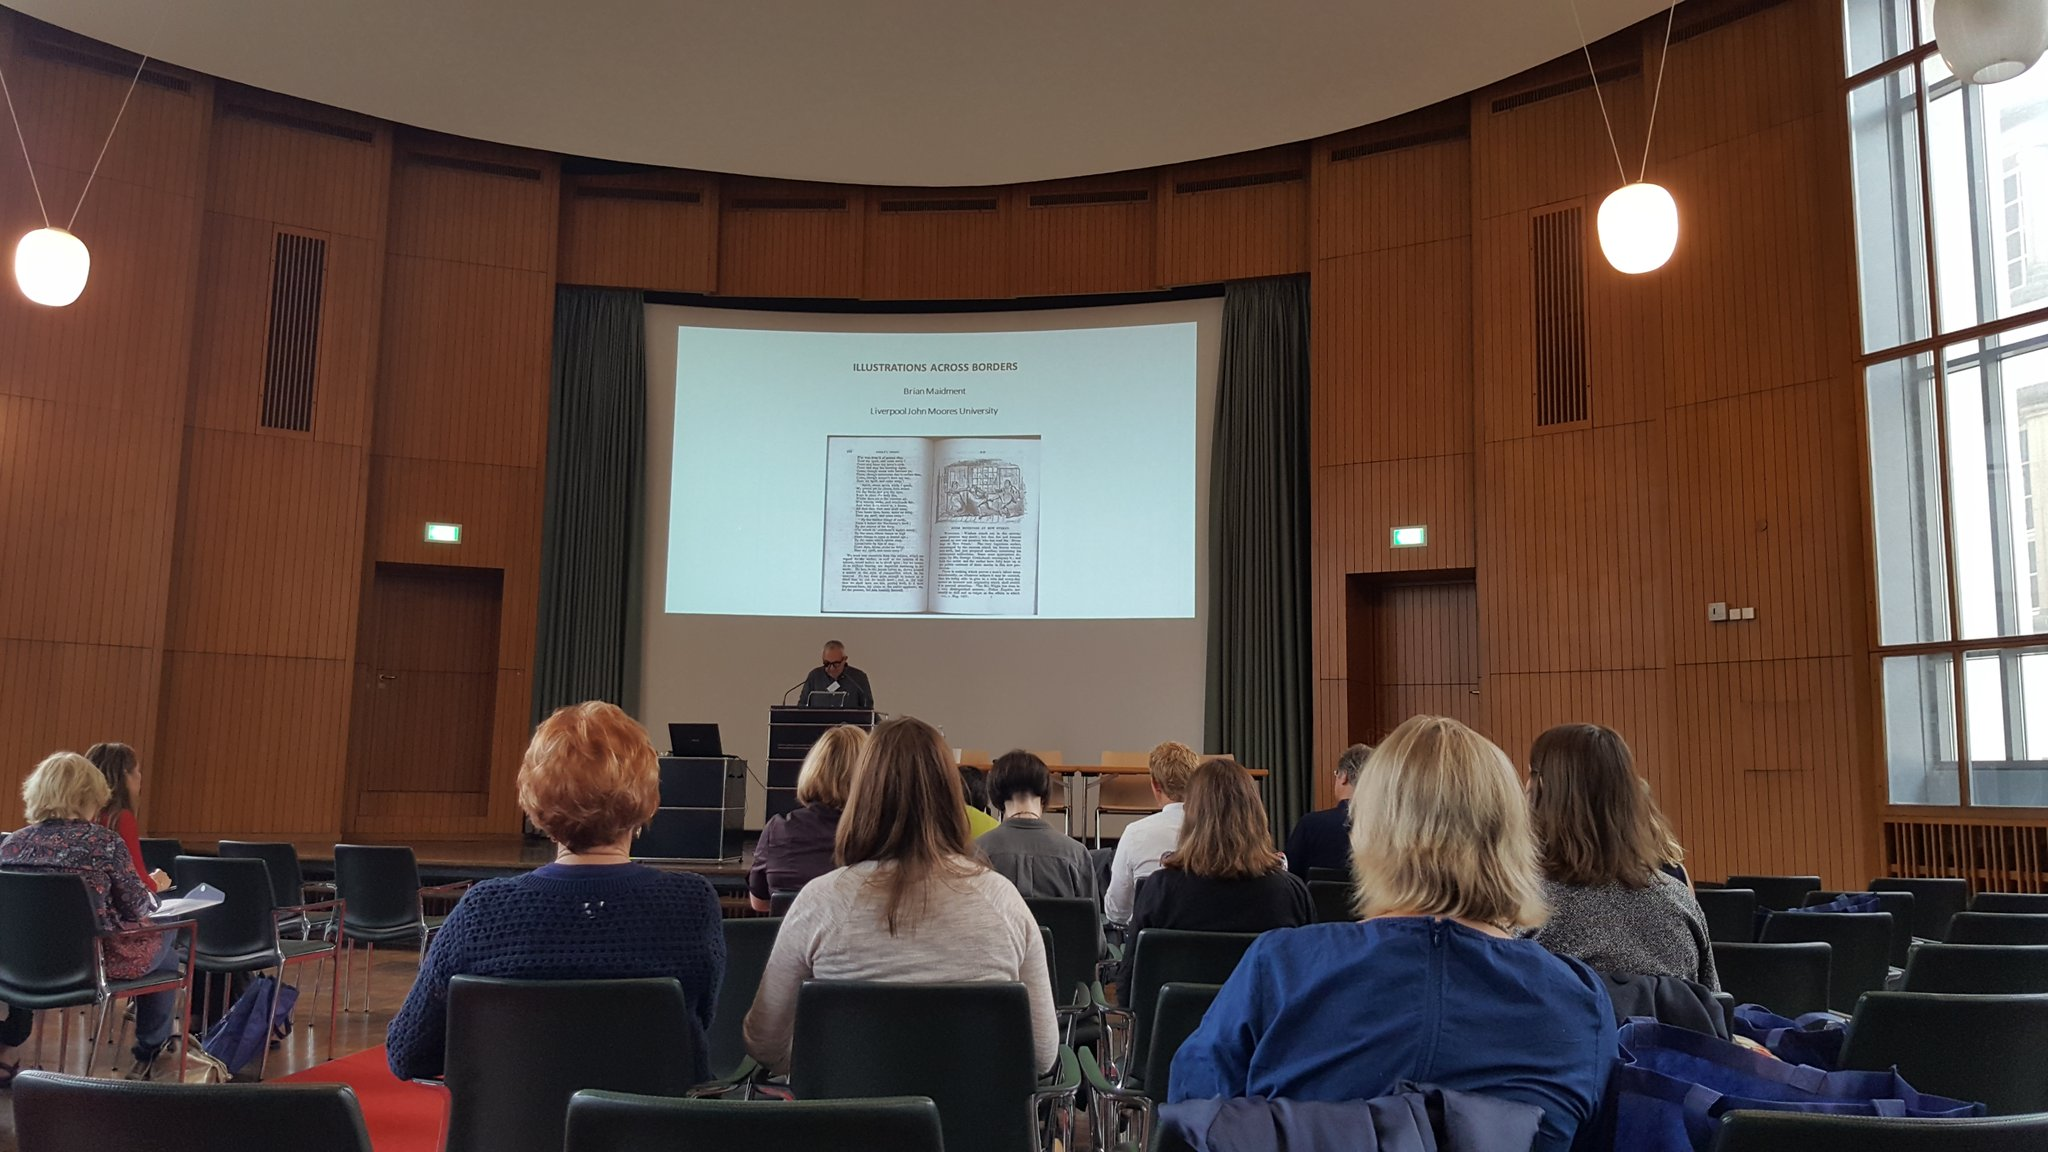 And we're off. Brian Maidment discussing 'illustrations without borders' #rsvp17 https://t.co/g77UidcRu2